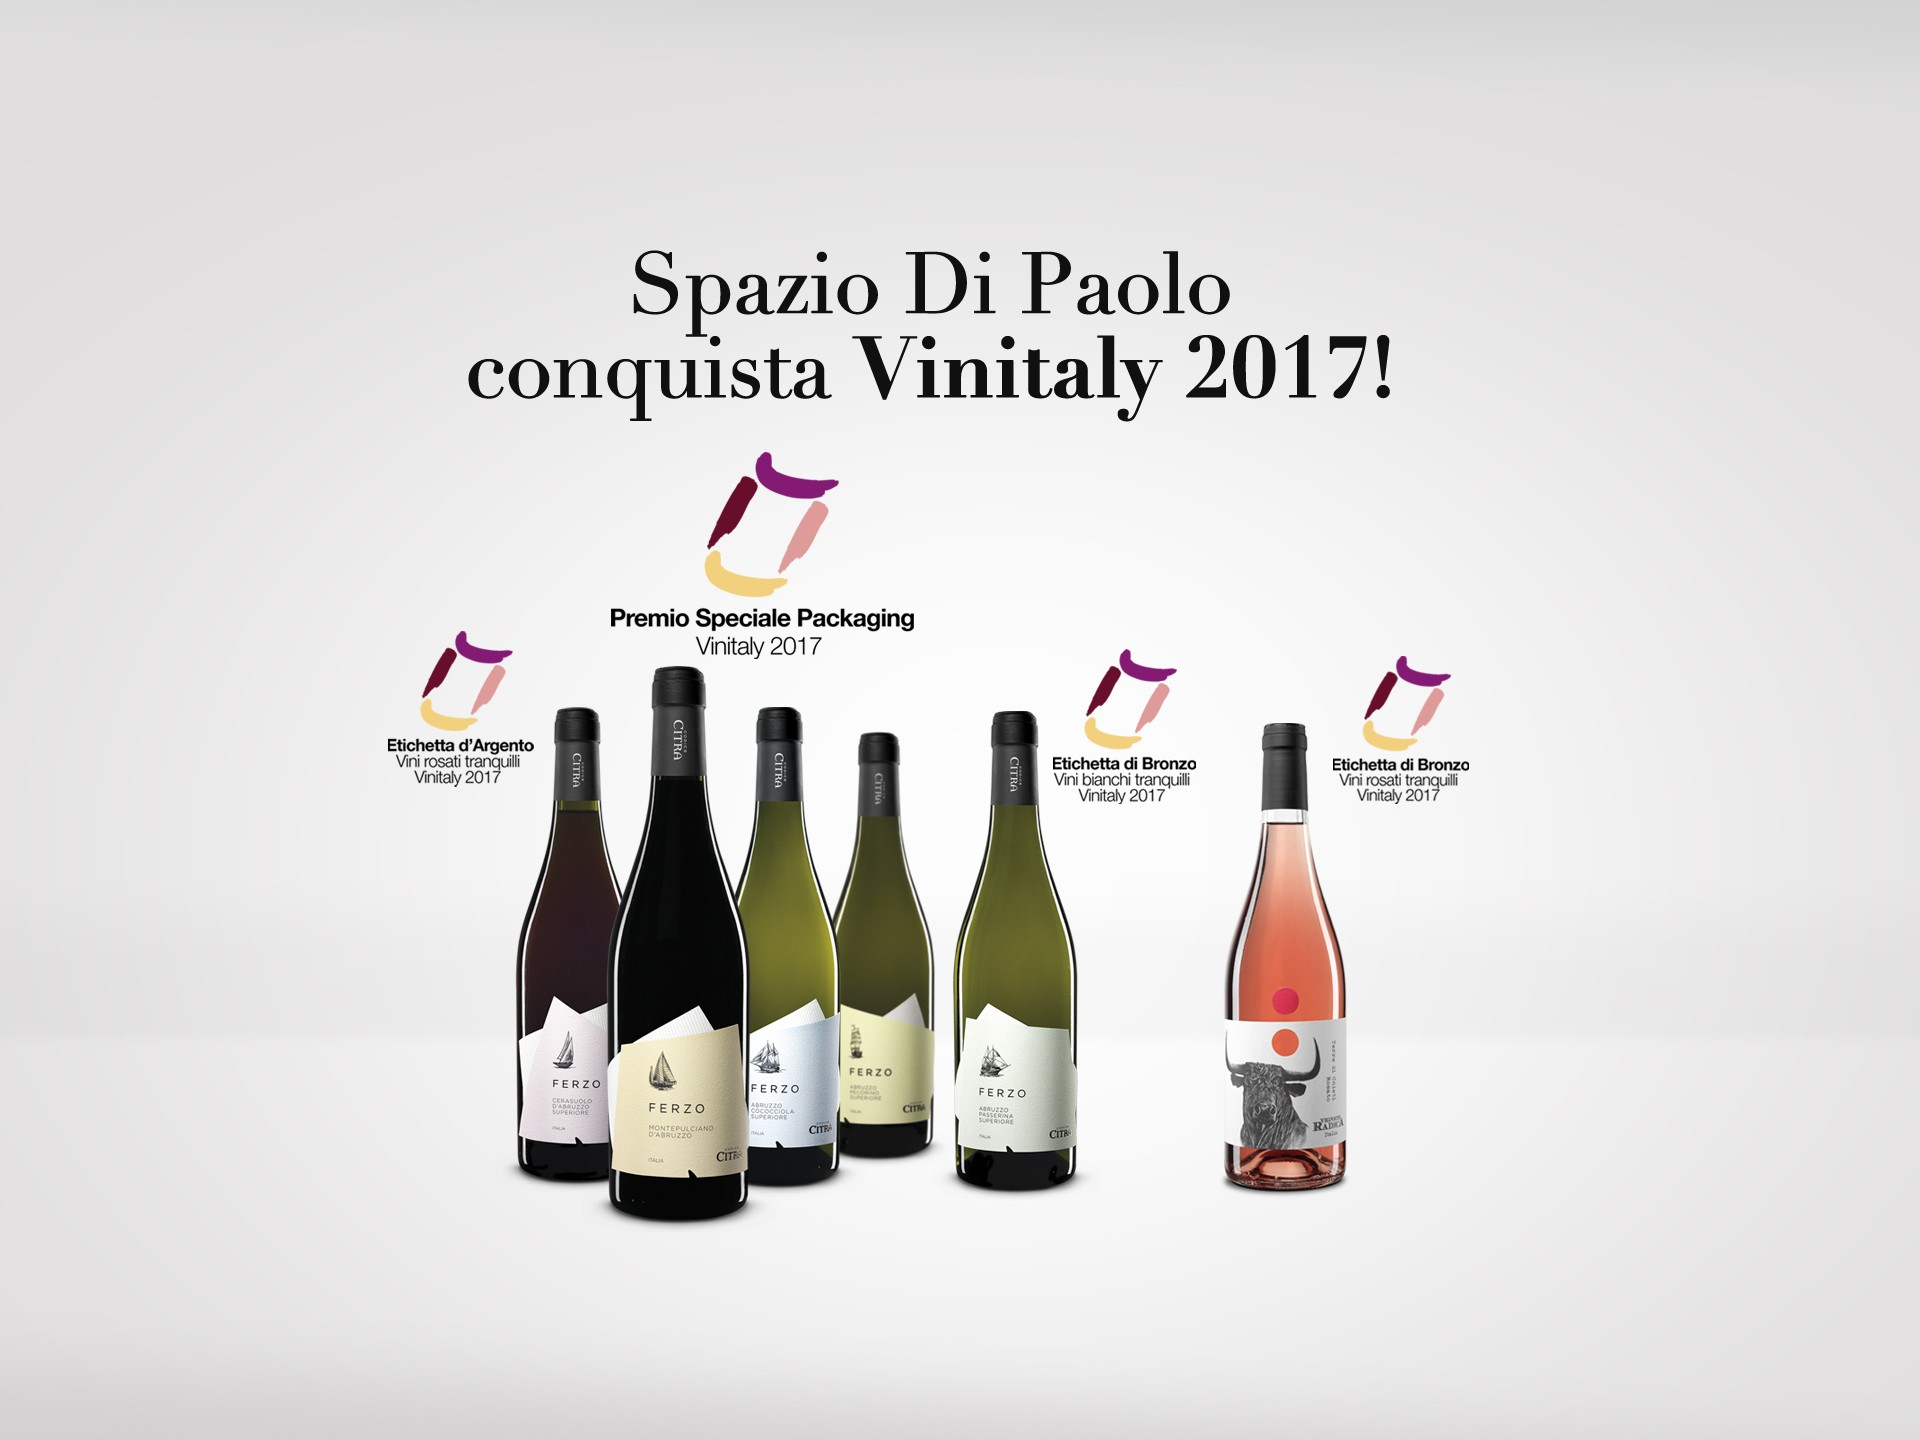 VINITALY_2017_AWARD_INTERNATIONAL_PACKAGING_COMPETITION_VINITALY_SPAZIO_DI_PAOLO_MARIO_DI_PAOLO_WINE_DESIGN